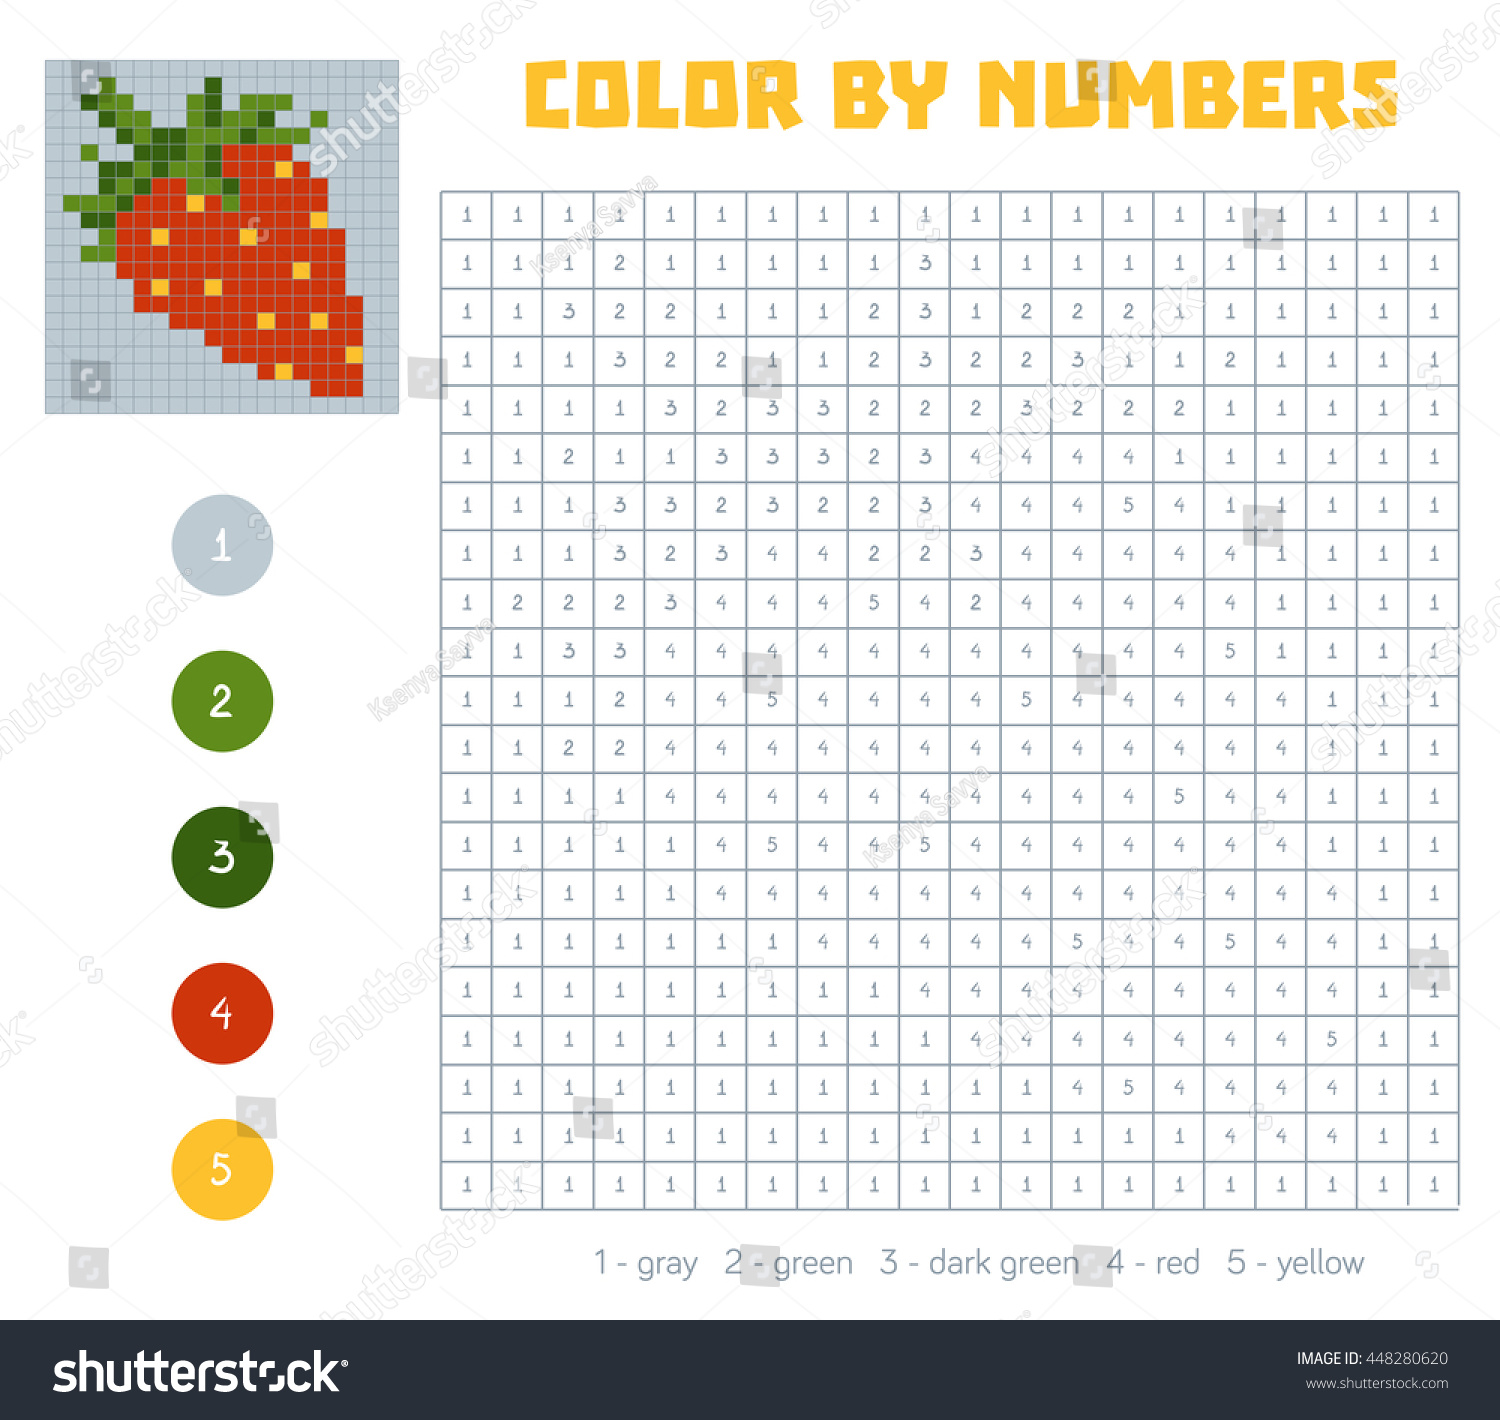 448280620 on Color By Number